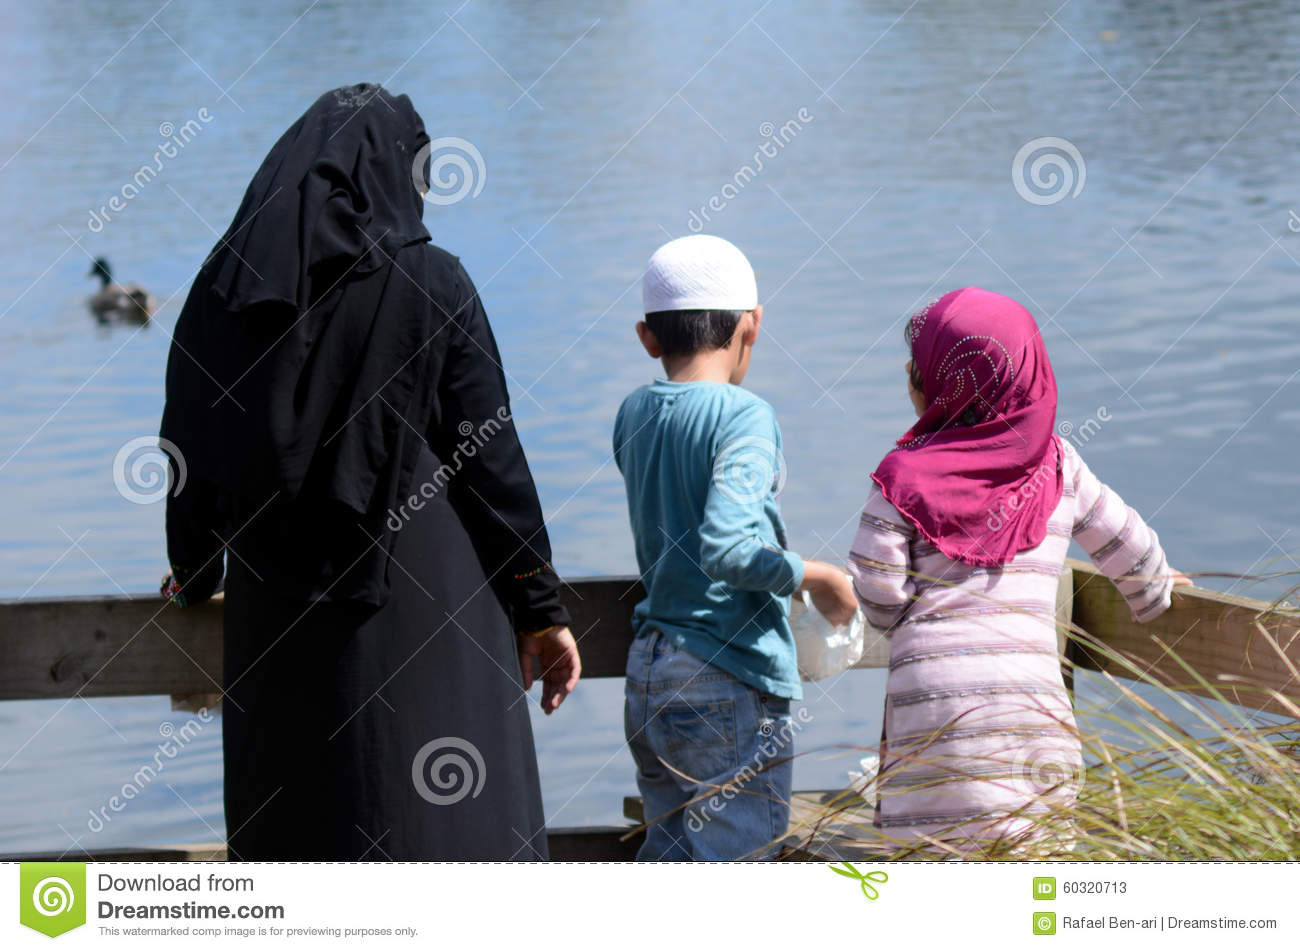 pond eddy single muslim girls Rchurch church directory has information on pond eddy united methodist church methodist church in pond eddy, new york ny such as church address, phone number, denomination, church size, and more.